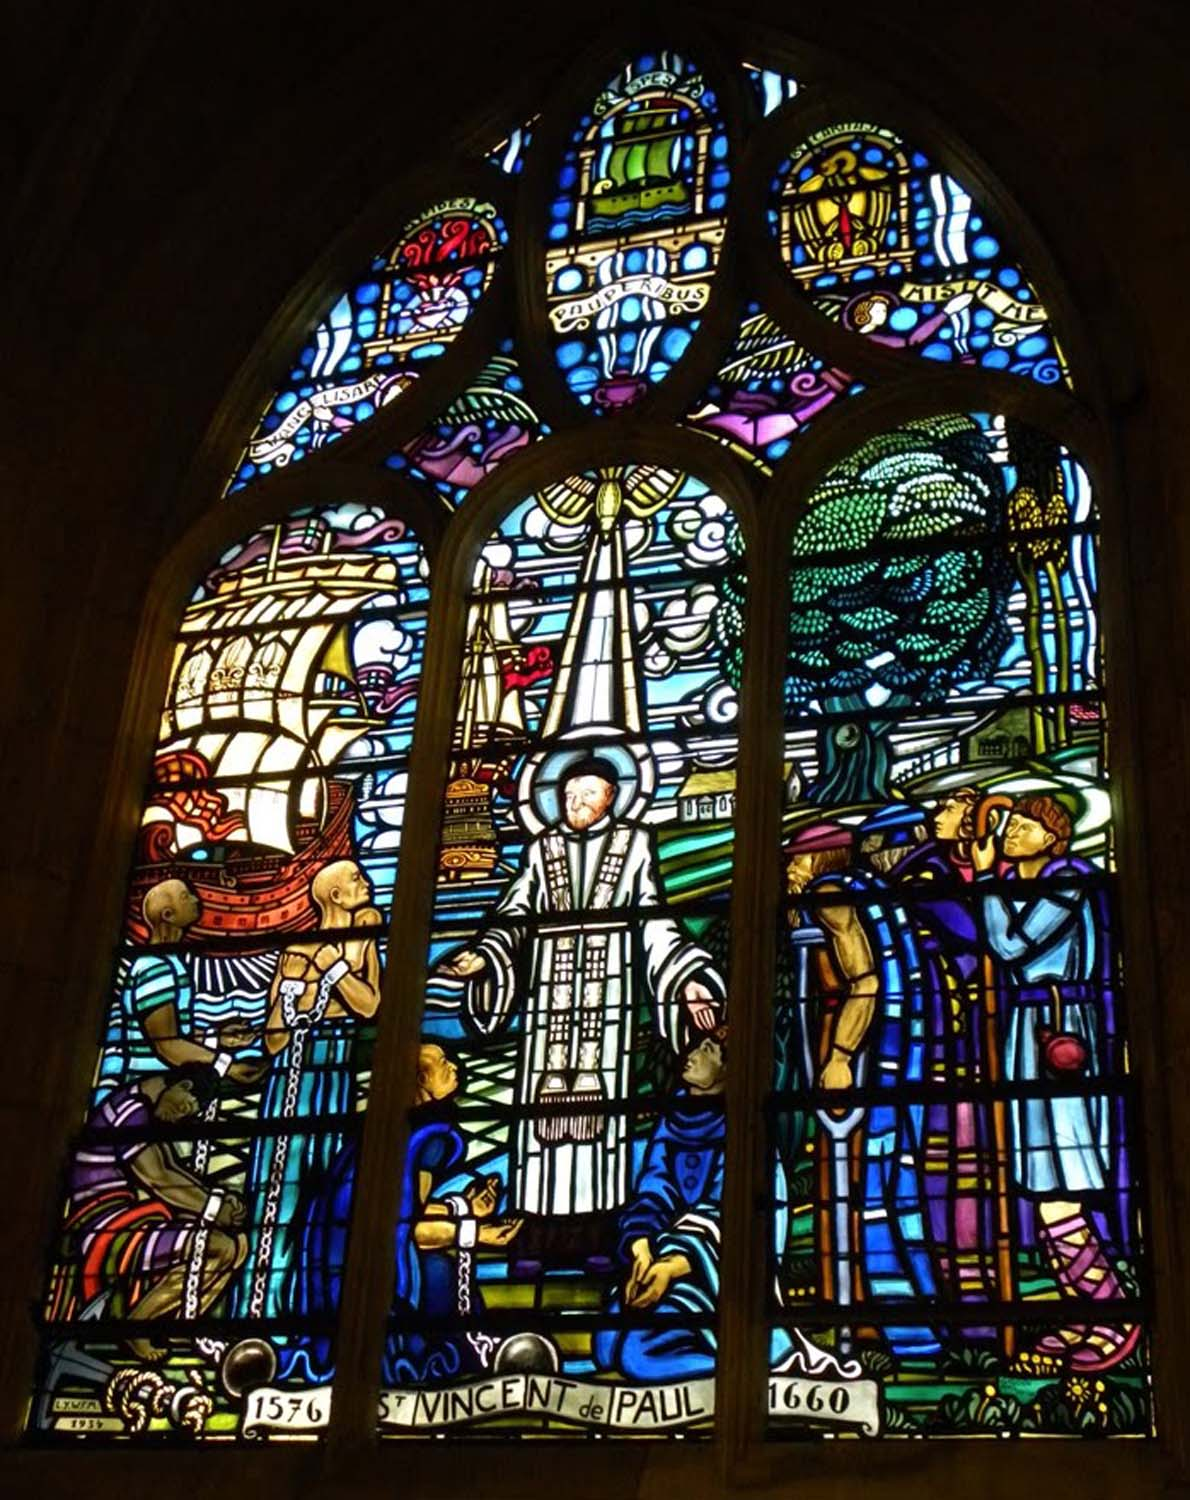 The stained glass windows honoring Saint Vincent and Saint Louise.